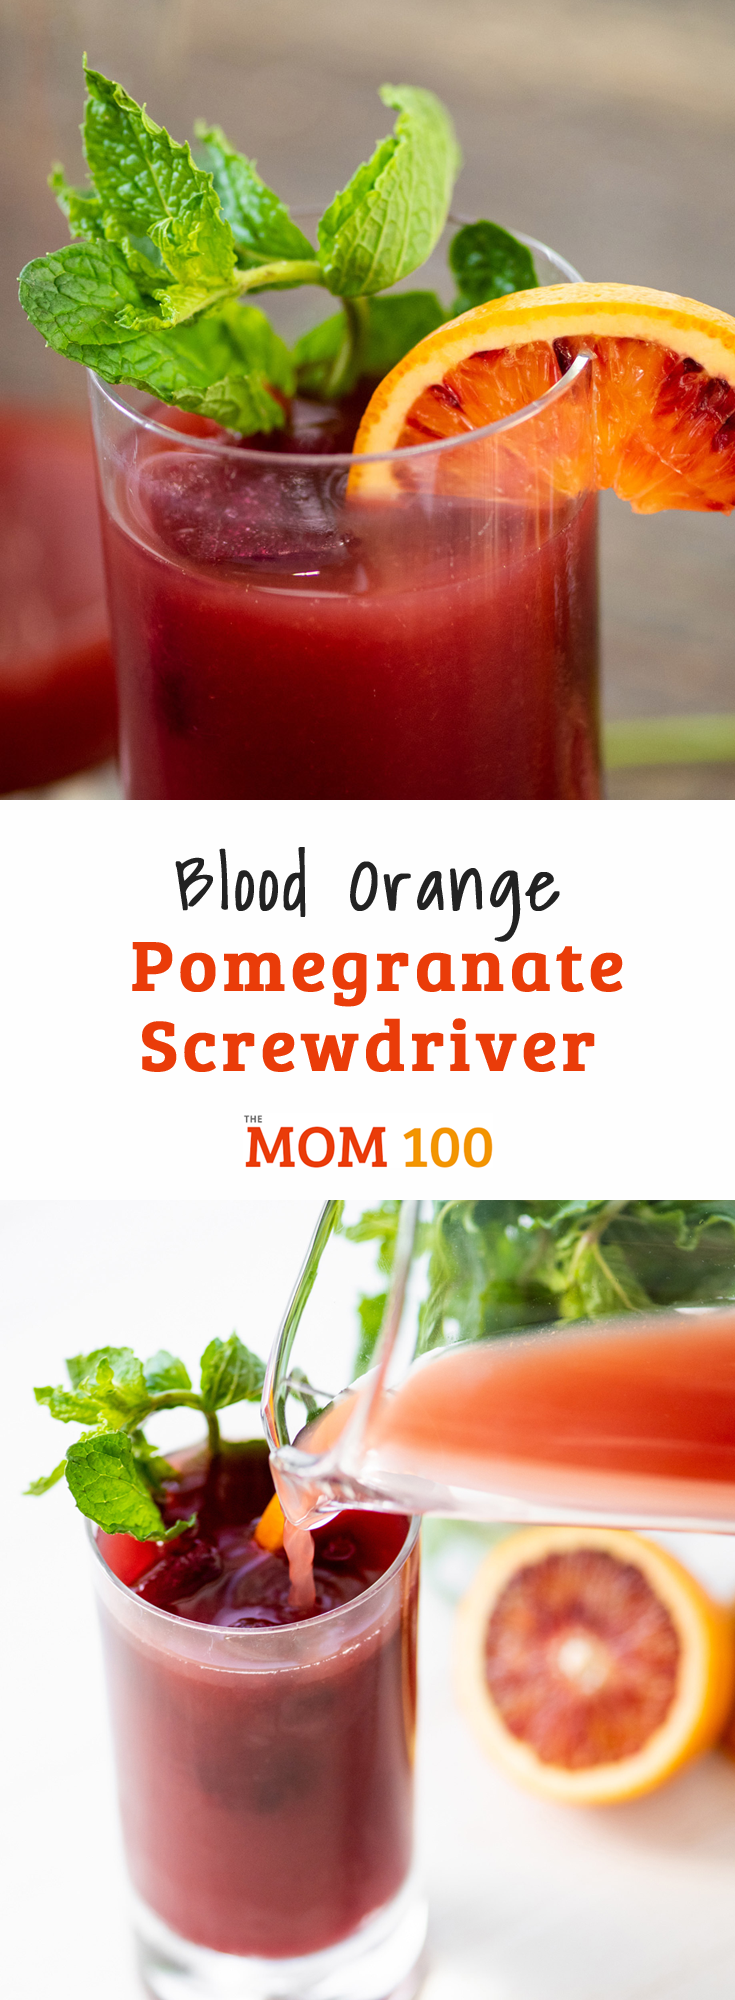 Blood Orange Pomegranate Screwdriver / The pomegranate juice is optional in this Blood Orange Pomegranate Screwdriver. It will deepen the color and add another layer of sweet and a bit tart flavor.